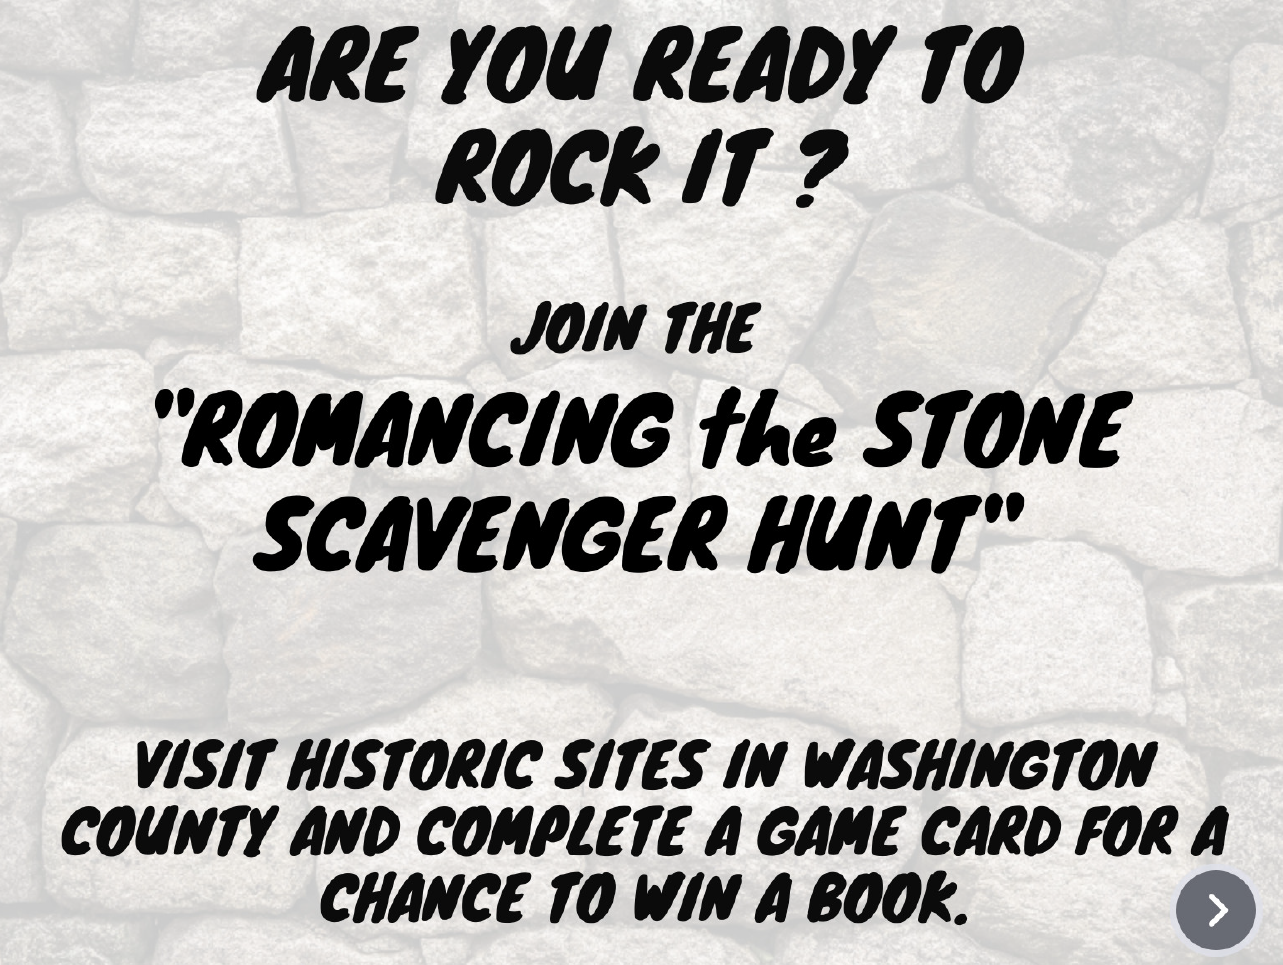 Romancing the Stone Scavenger Hunt